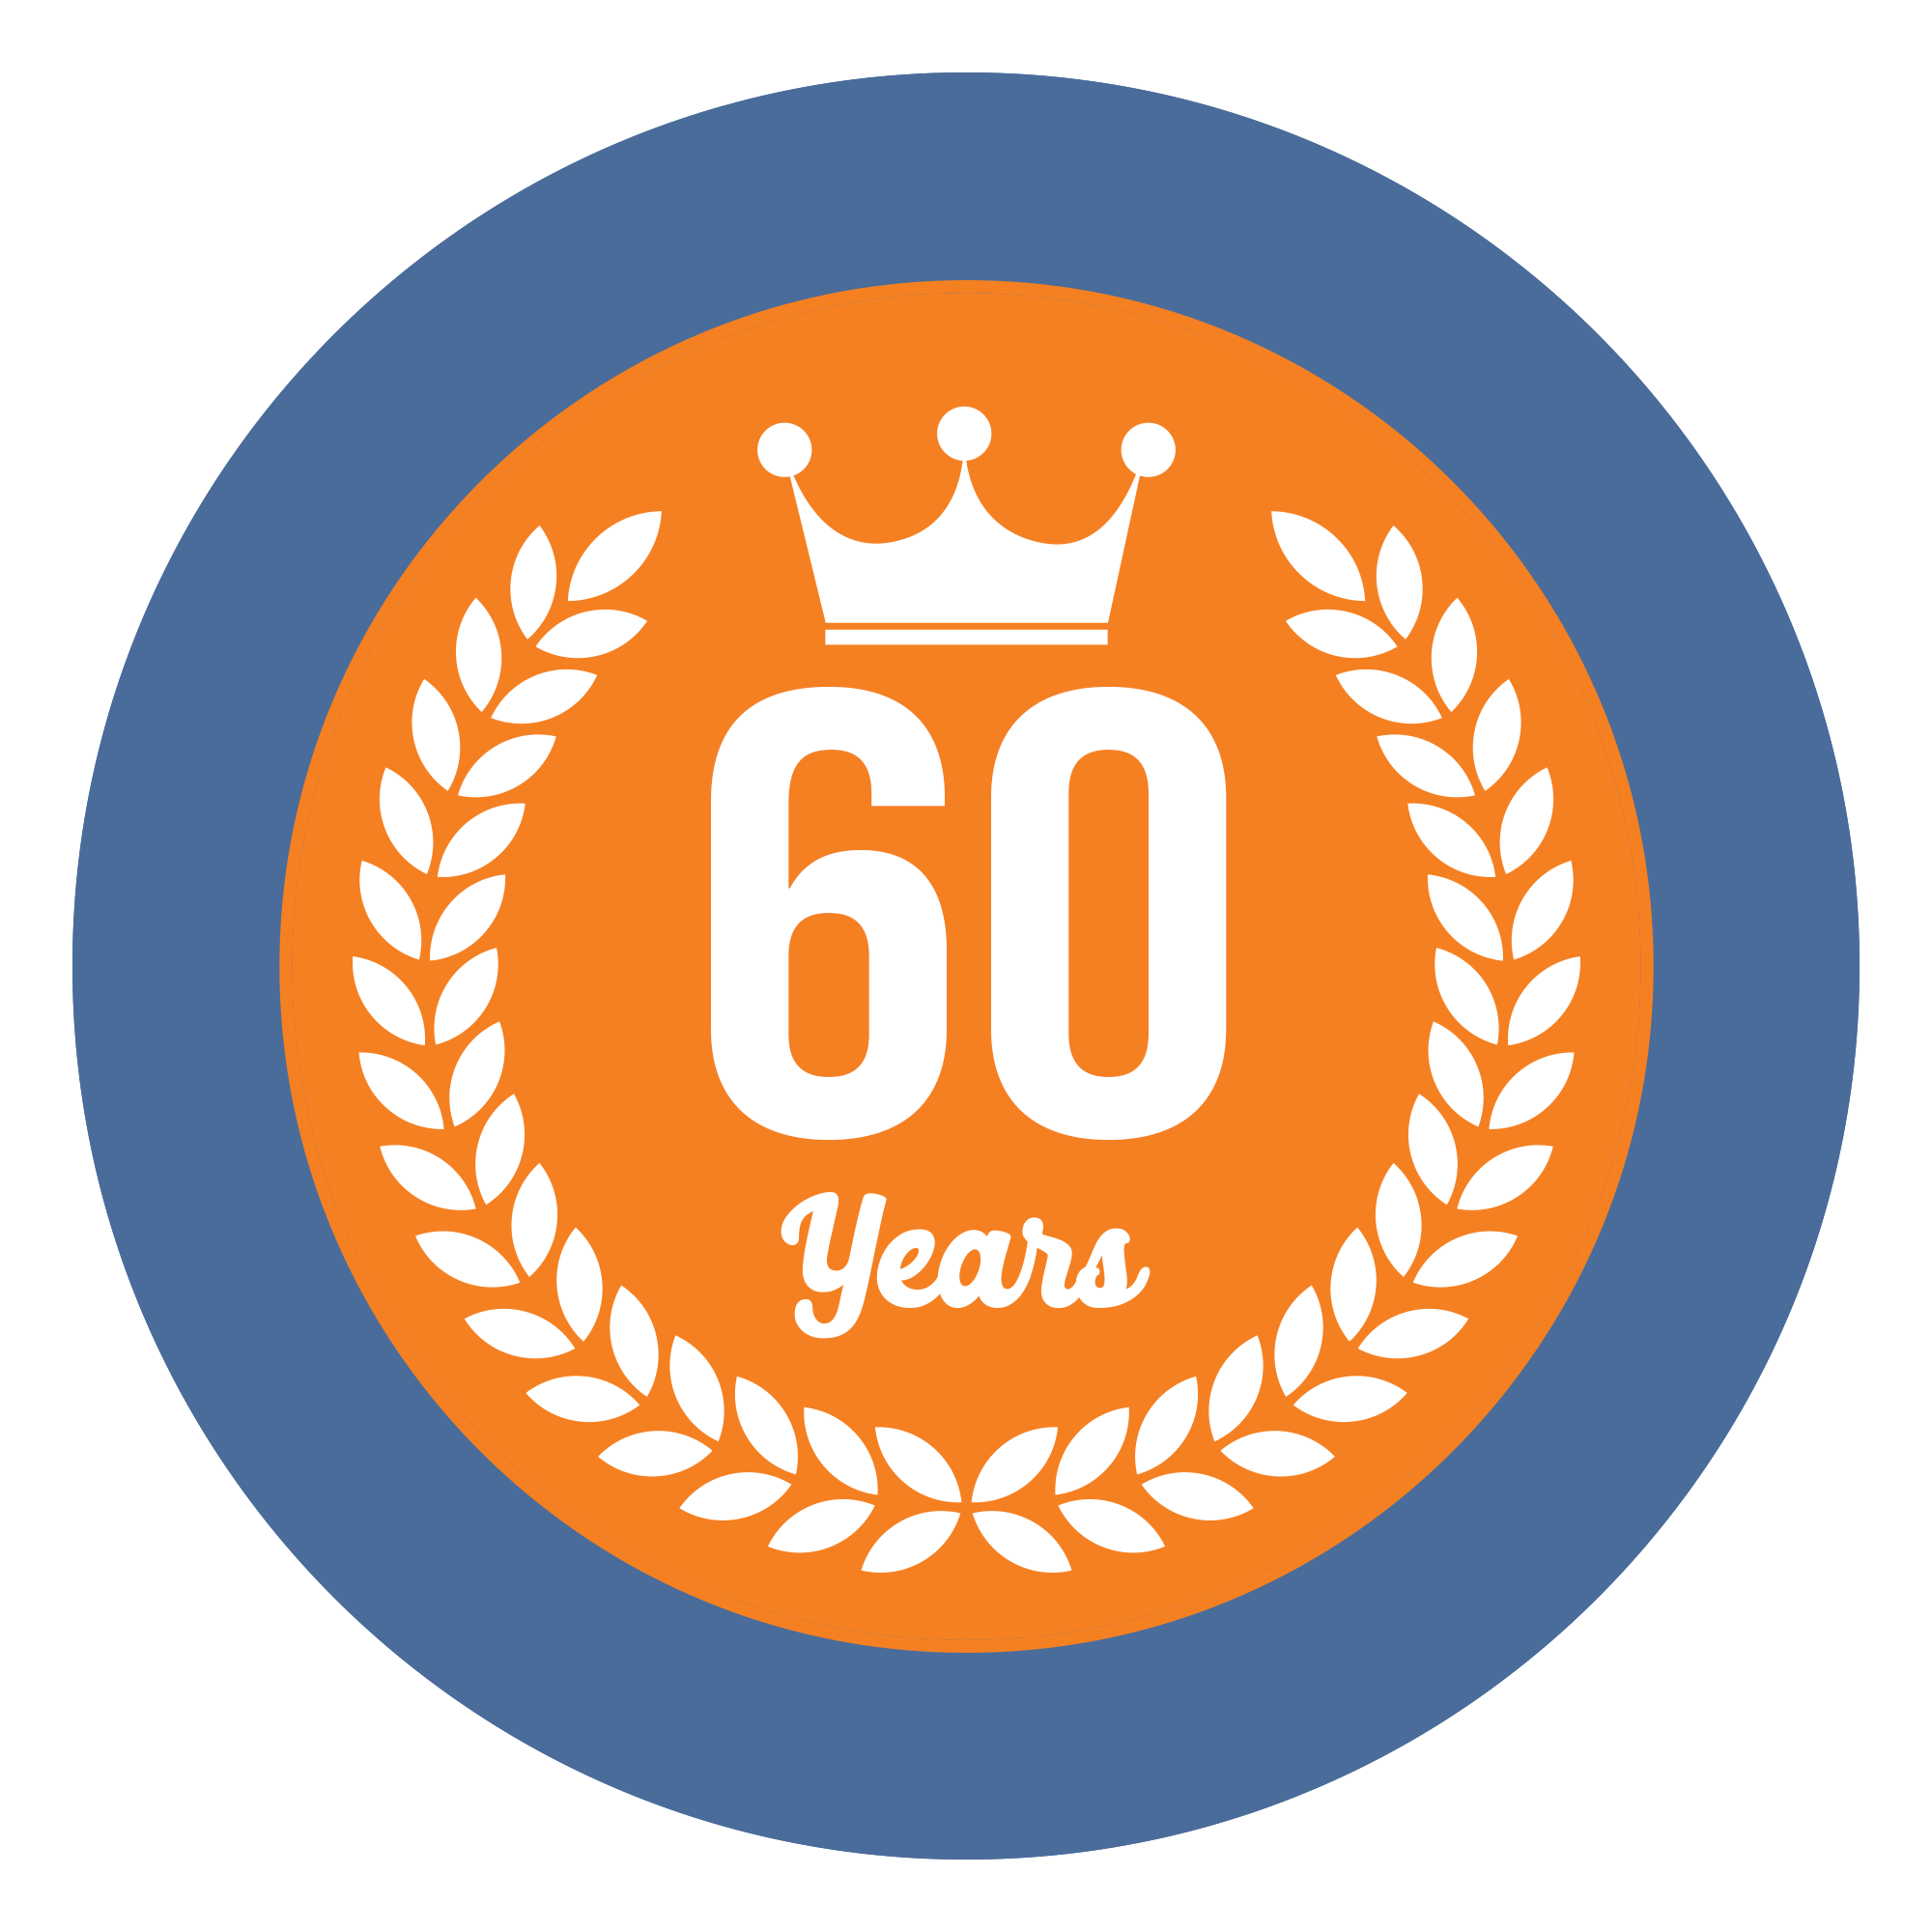 southgate-icons-update-60years